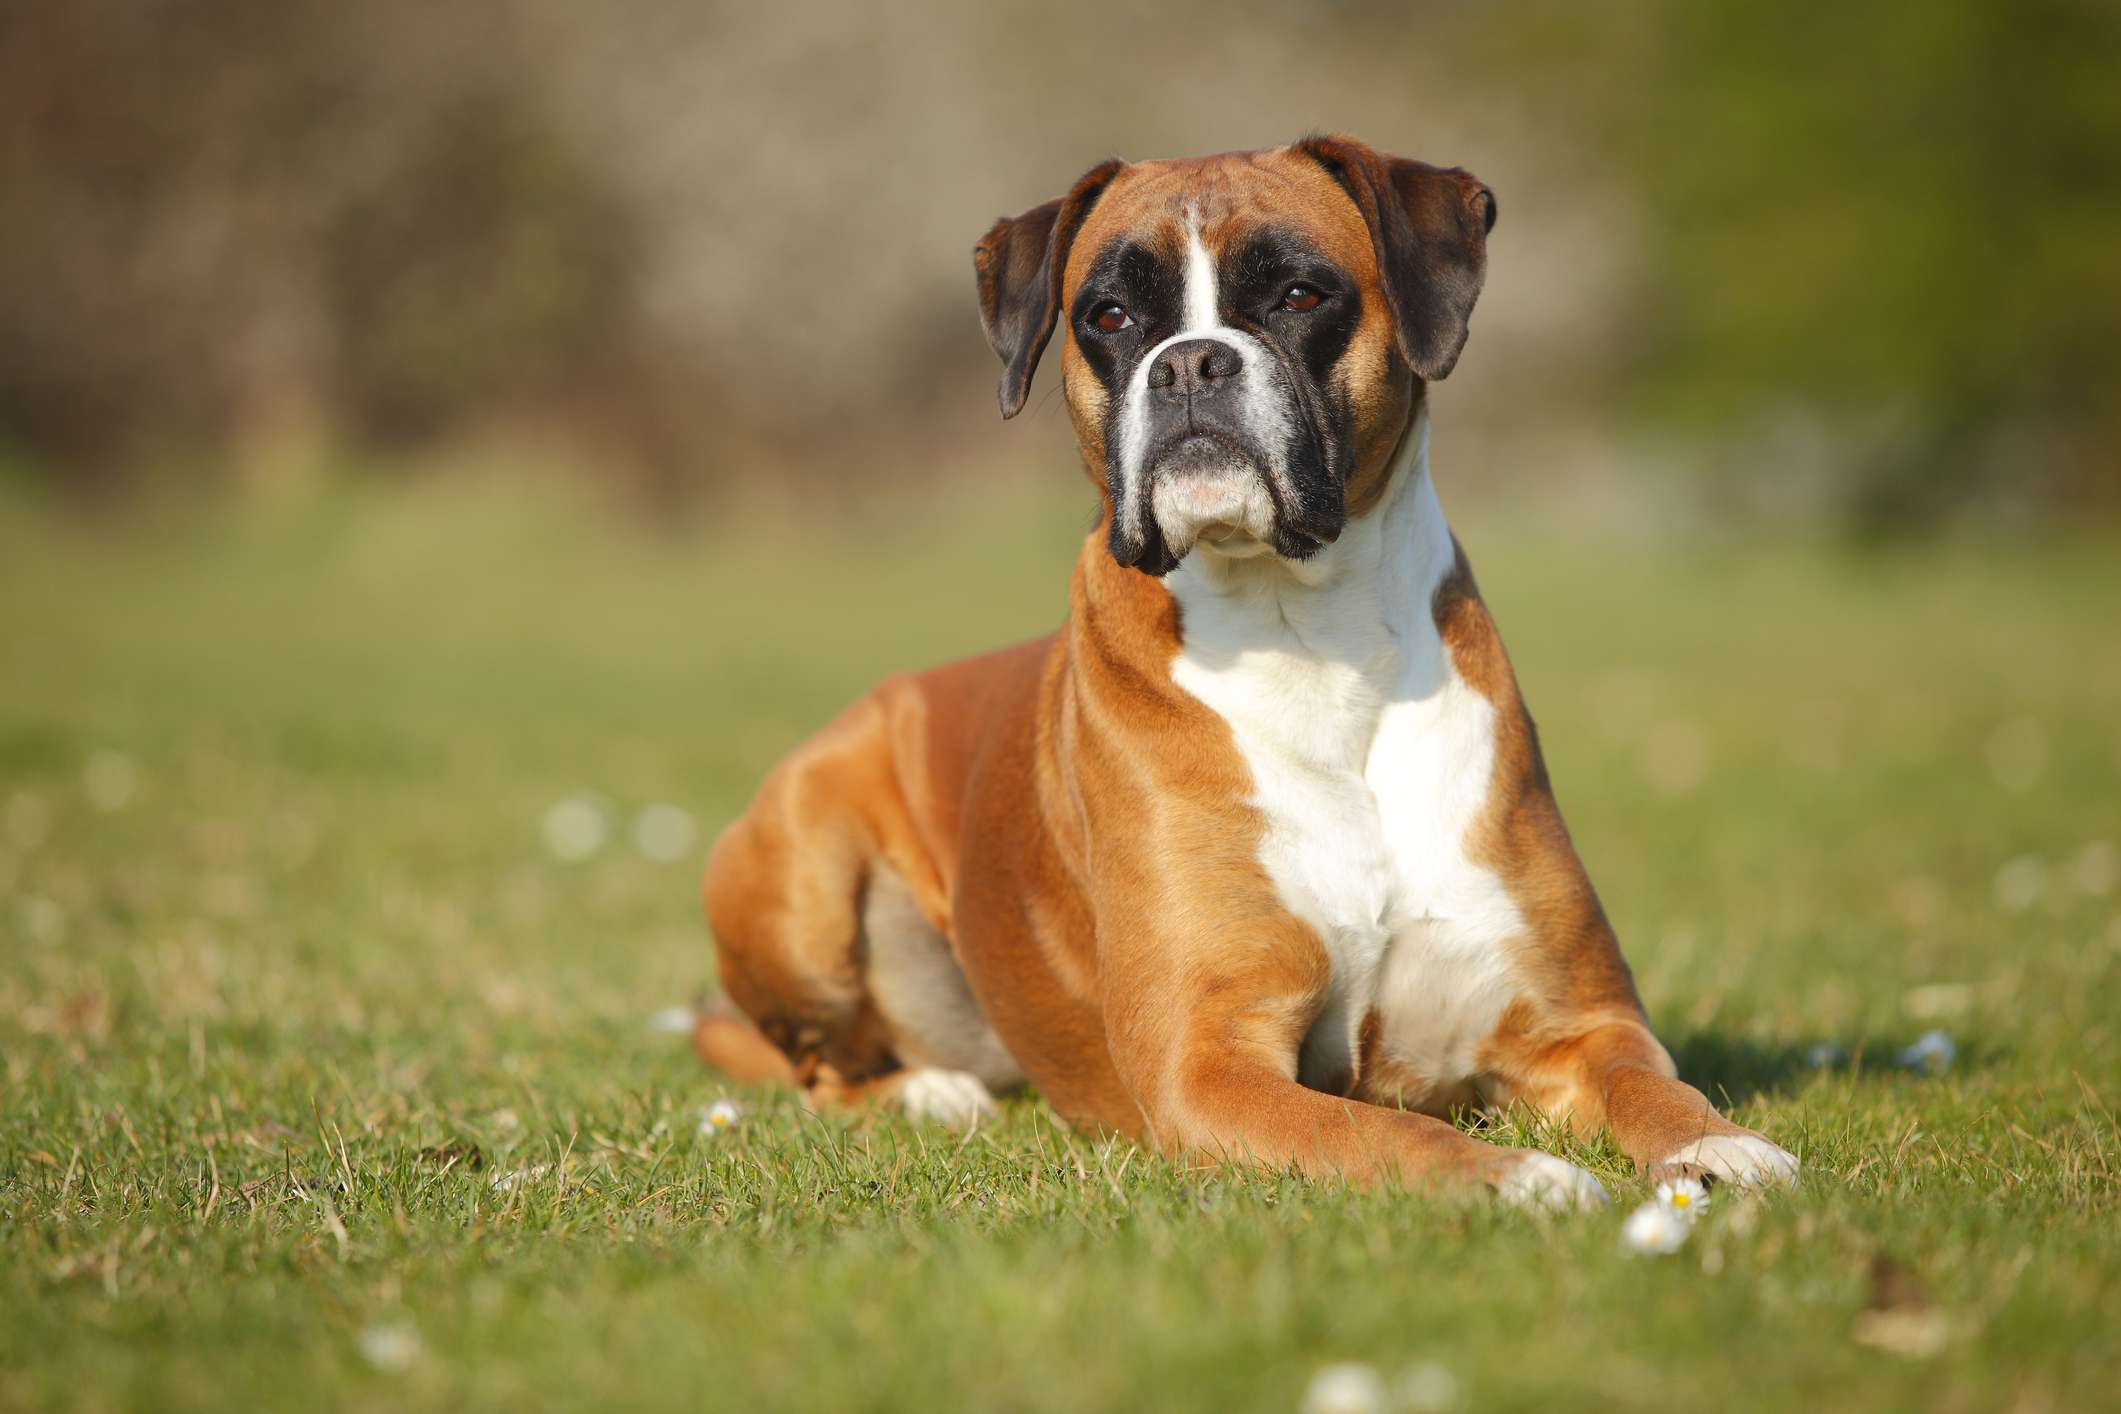 A boxer dog laying in the grass and looking into the distance.